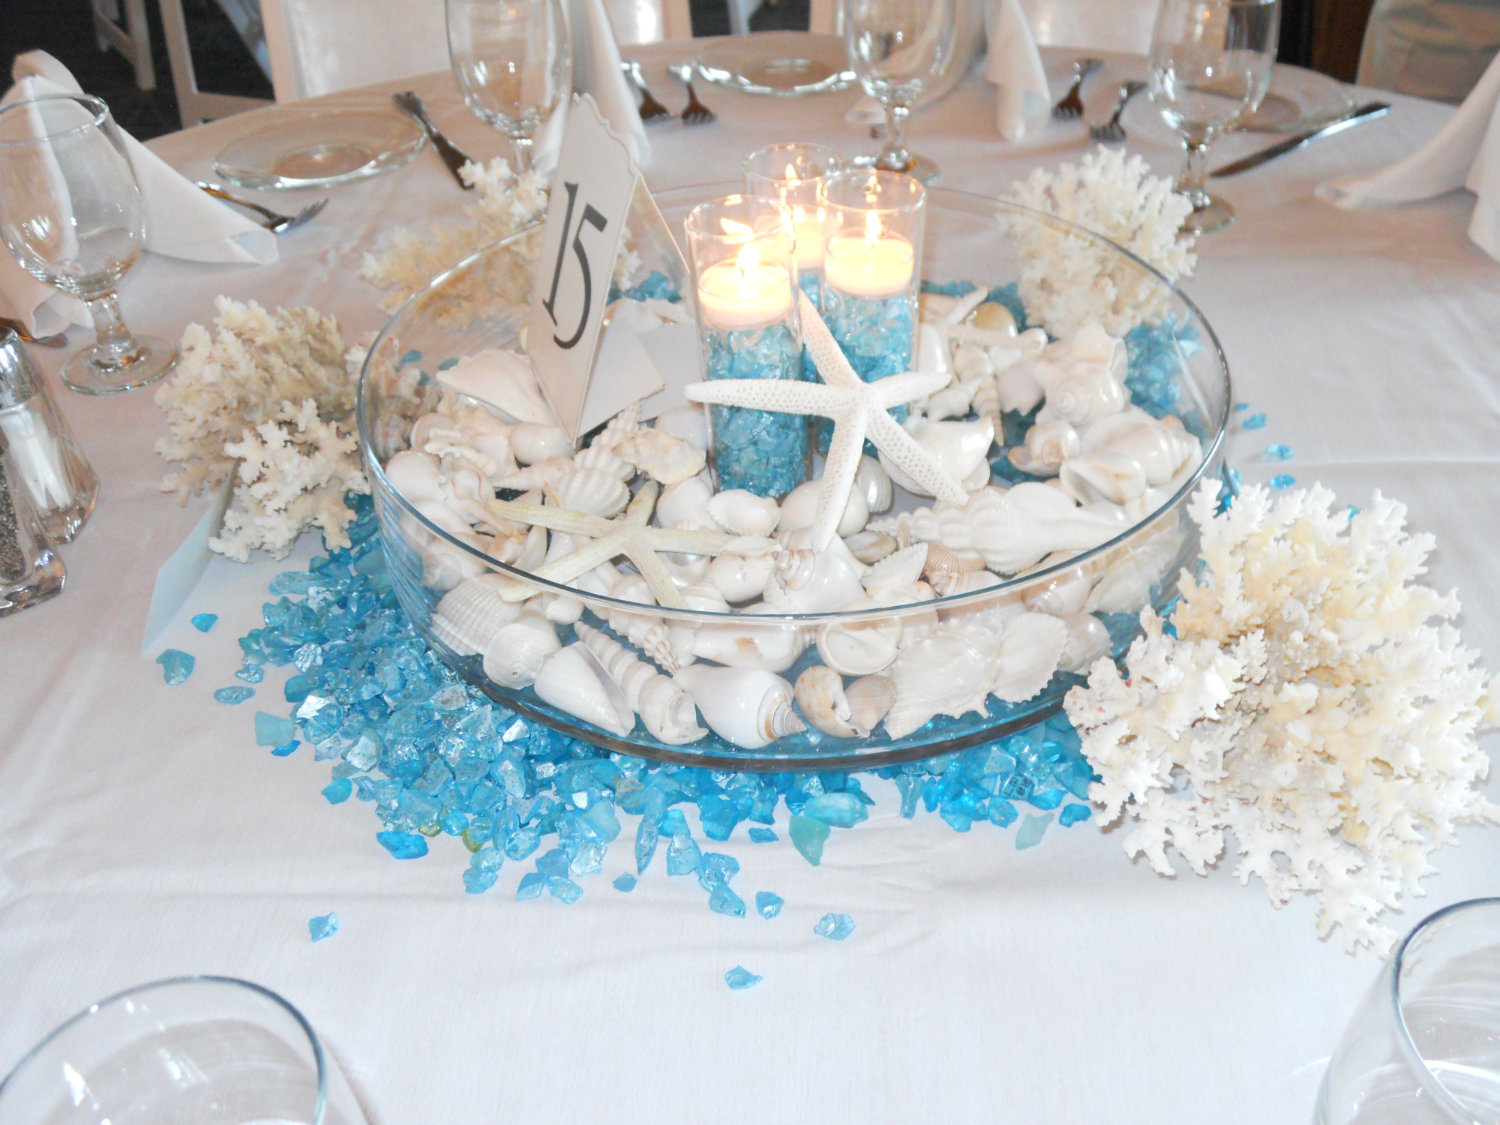 Wedding Decorations Re Liven Your Look And Save Money With Do It Yourself Wedding